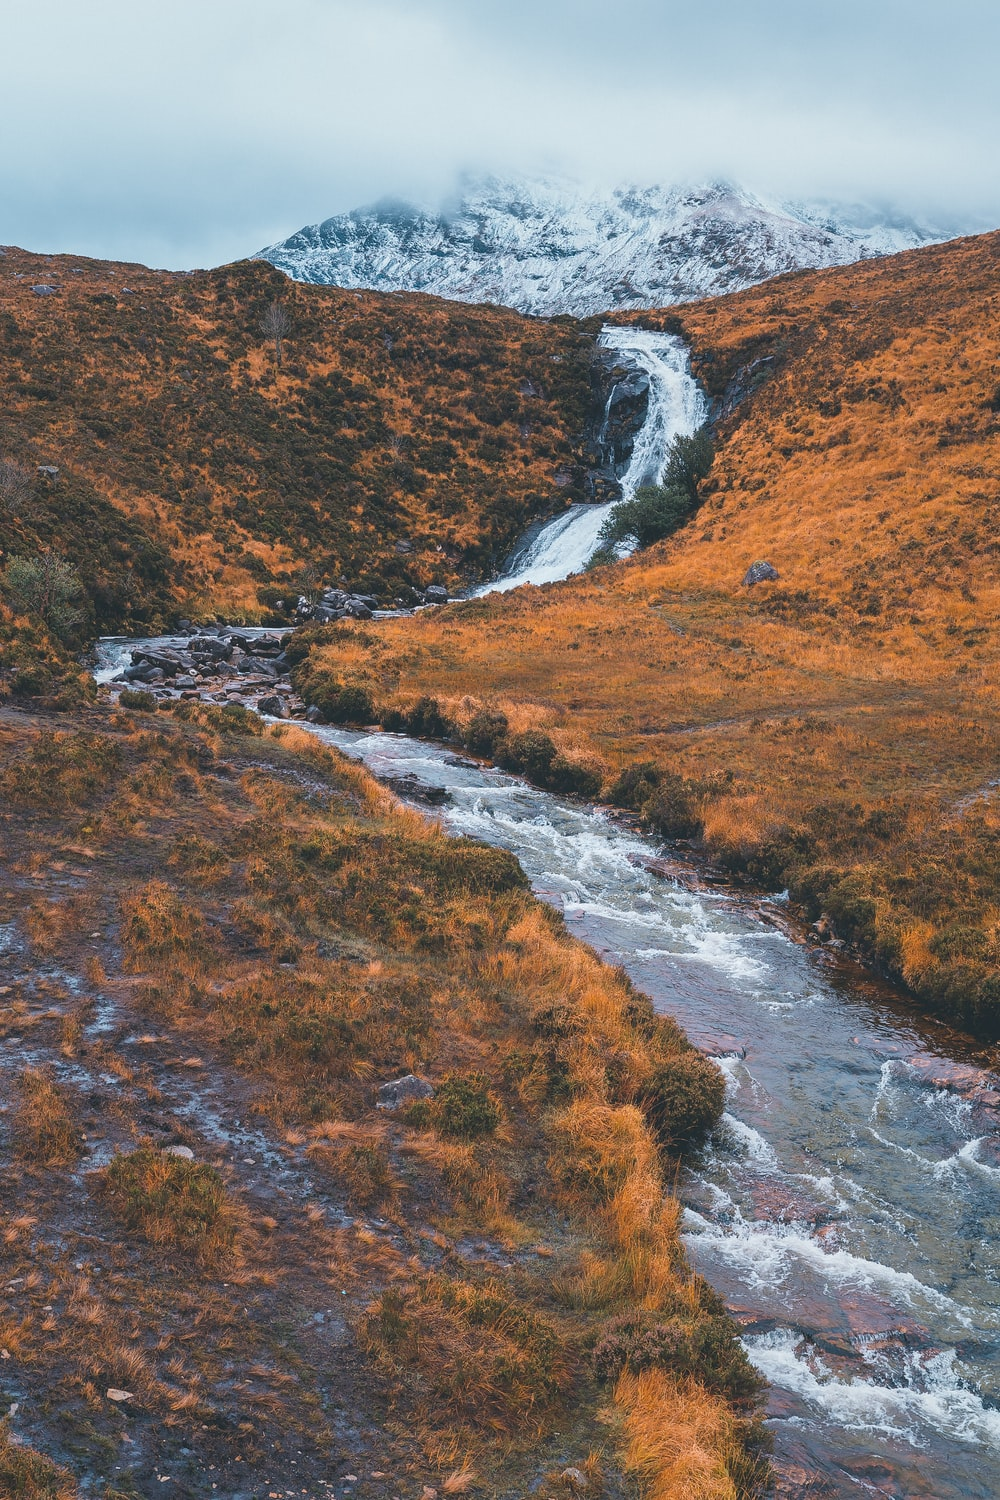 flowing river near field viewing mountain under white sky during daytime